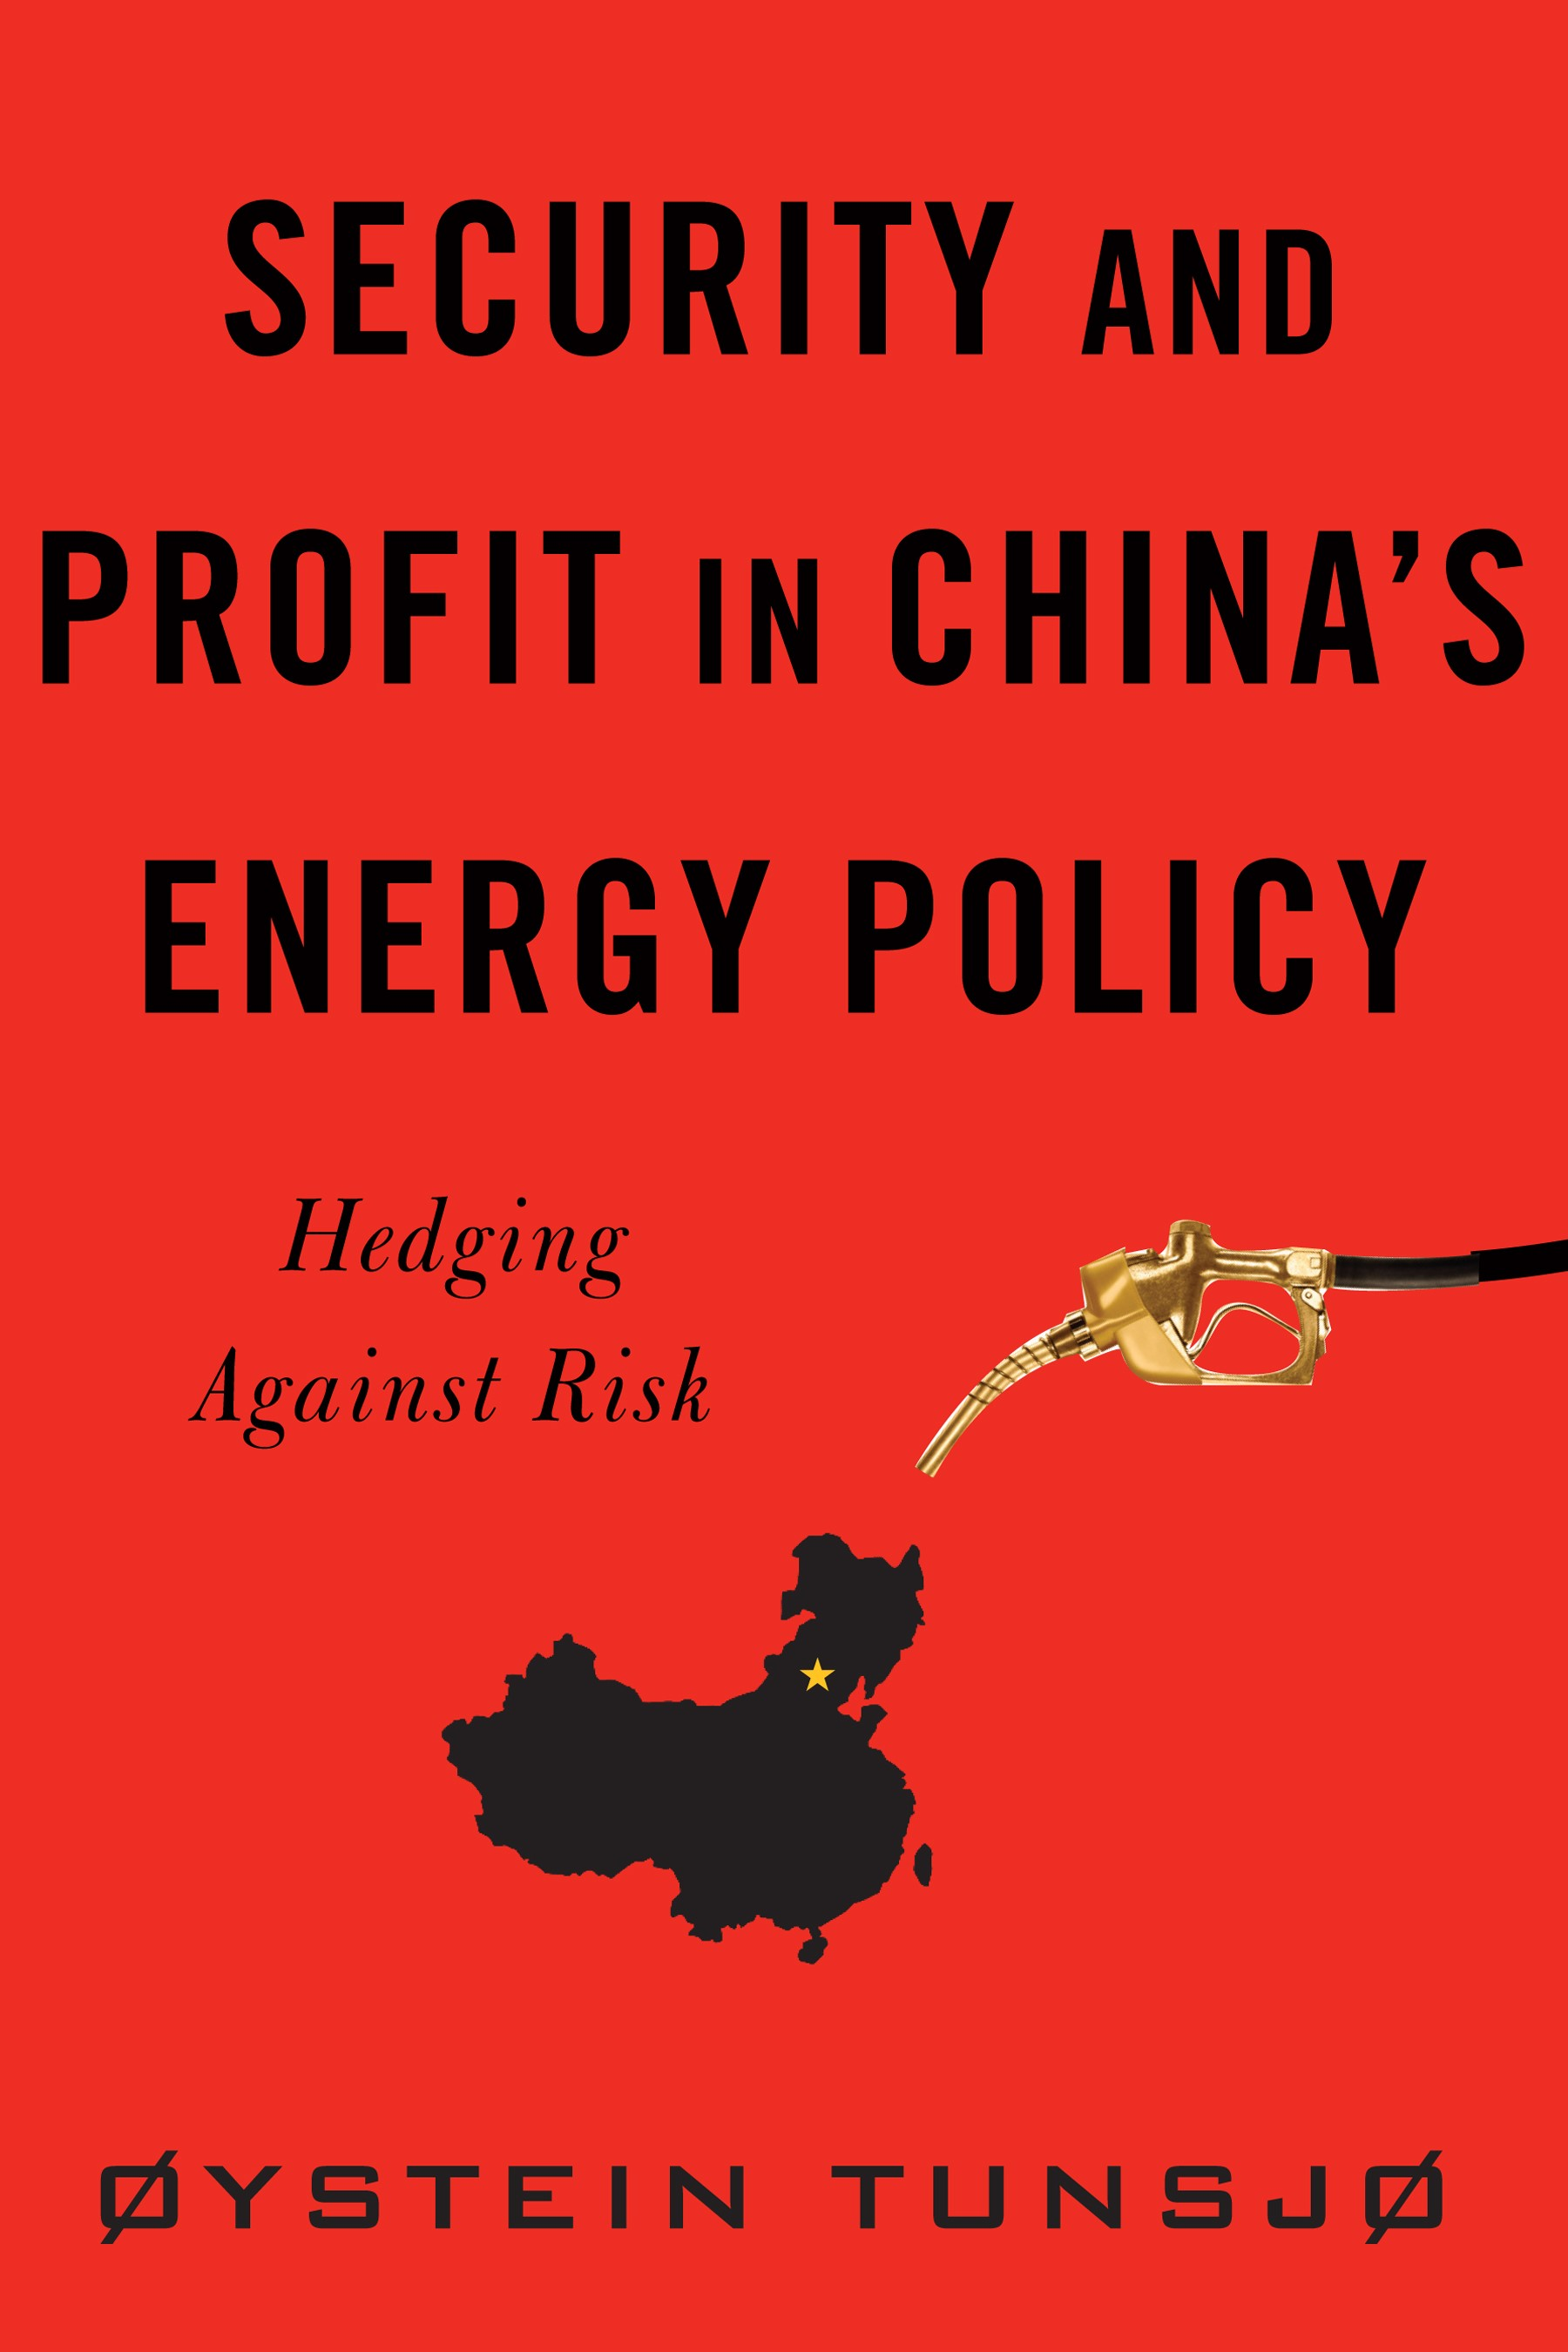 Abbildung von Tunsjø | Security and Profit in China's Energy Policy | 2013